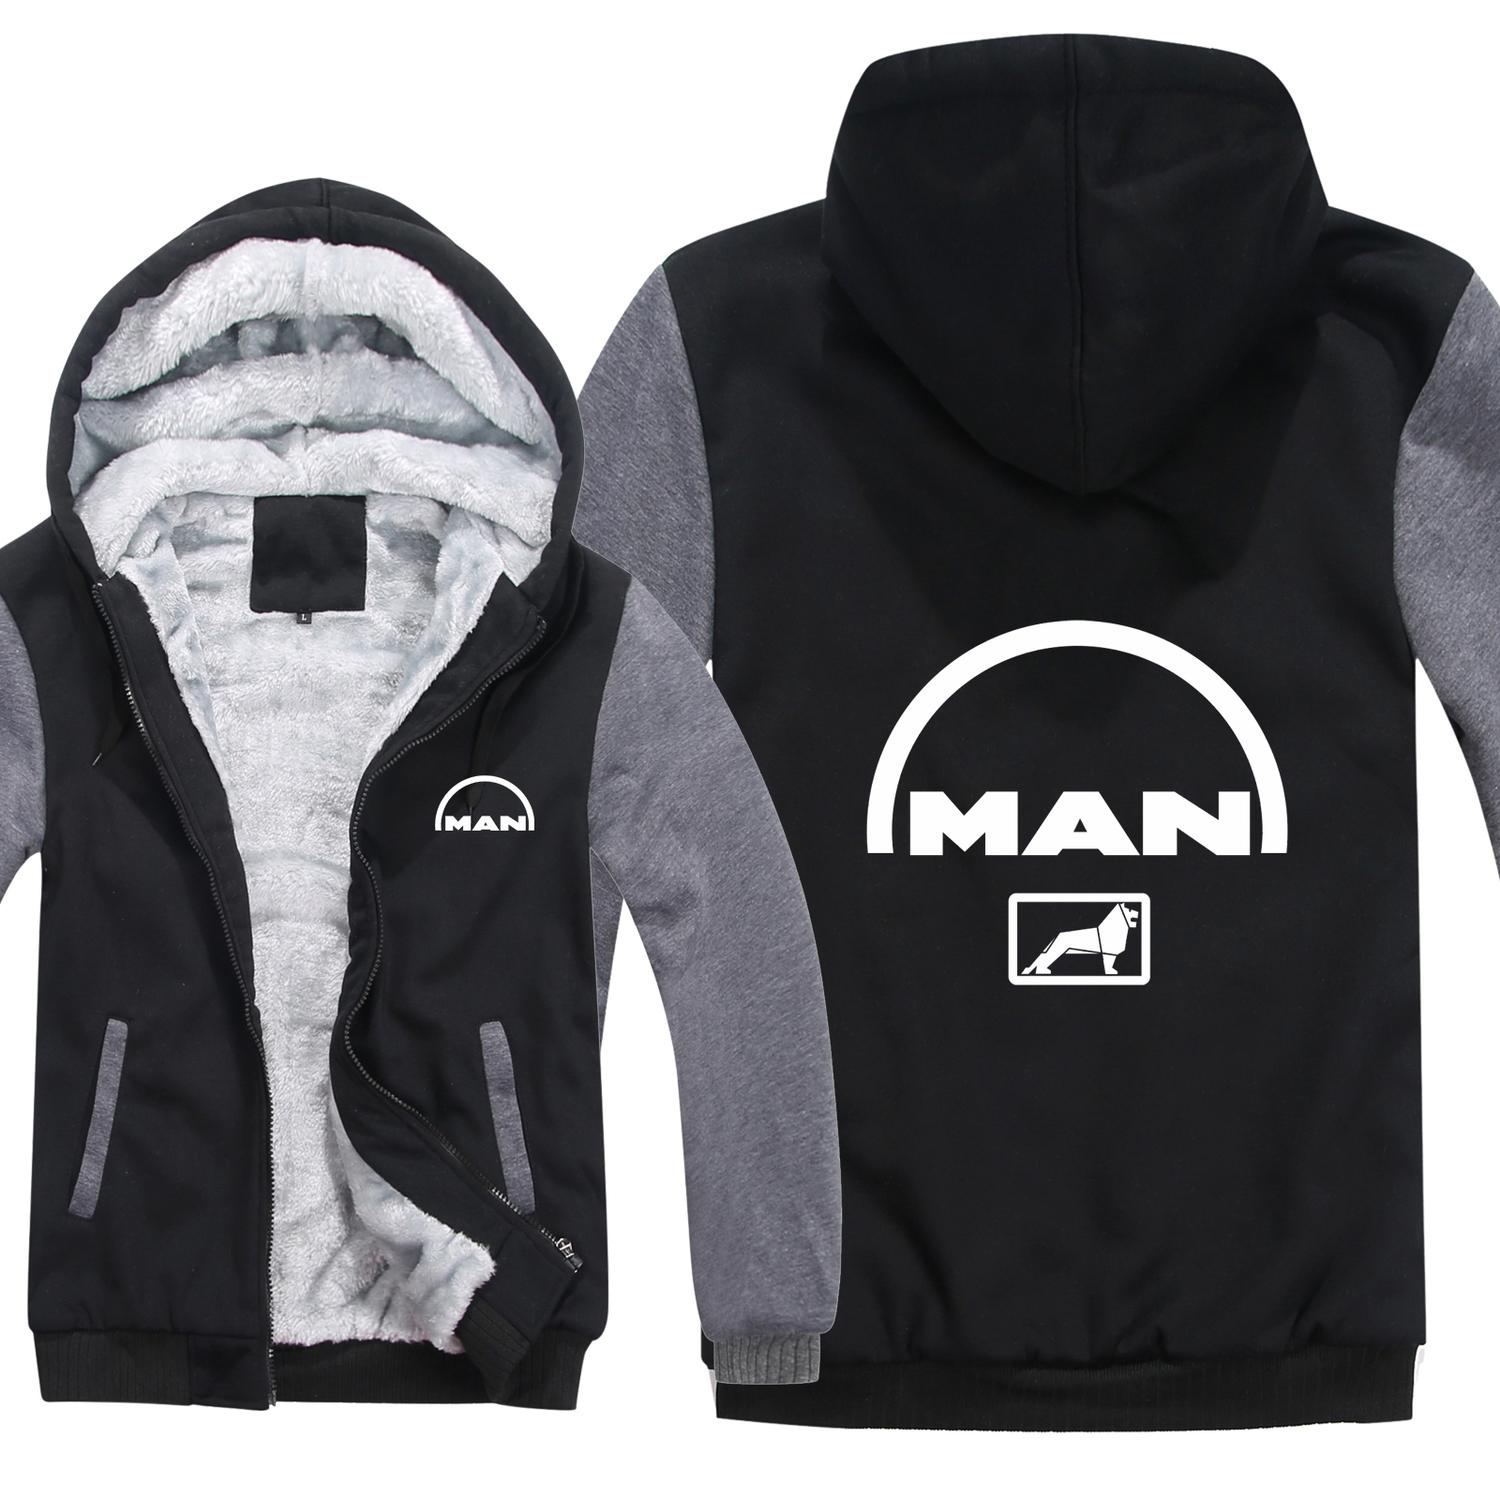 MAN Truck Hoodies Men Fashion Coat Pullover Wool Liner Jacket MAN Truck Sweatshirts Hoody HS-012 T200103